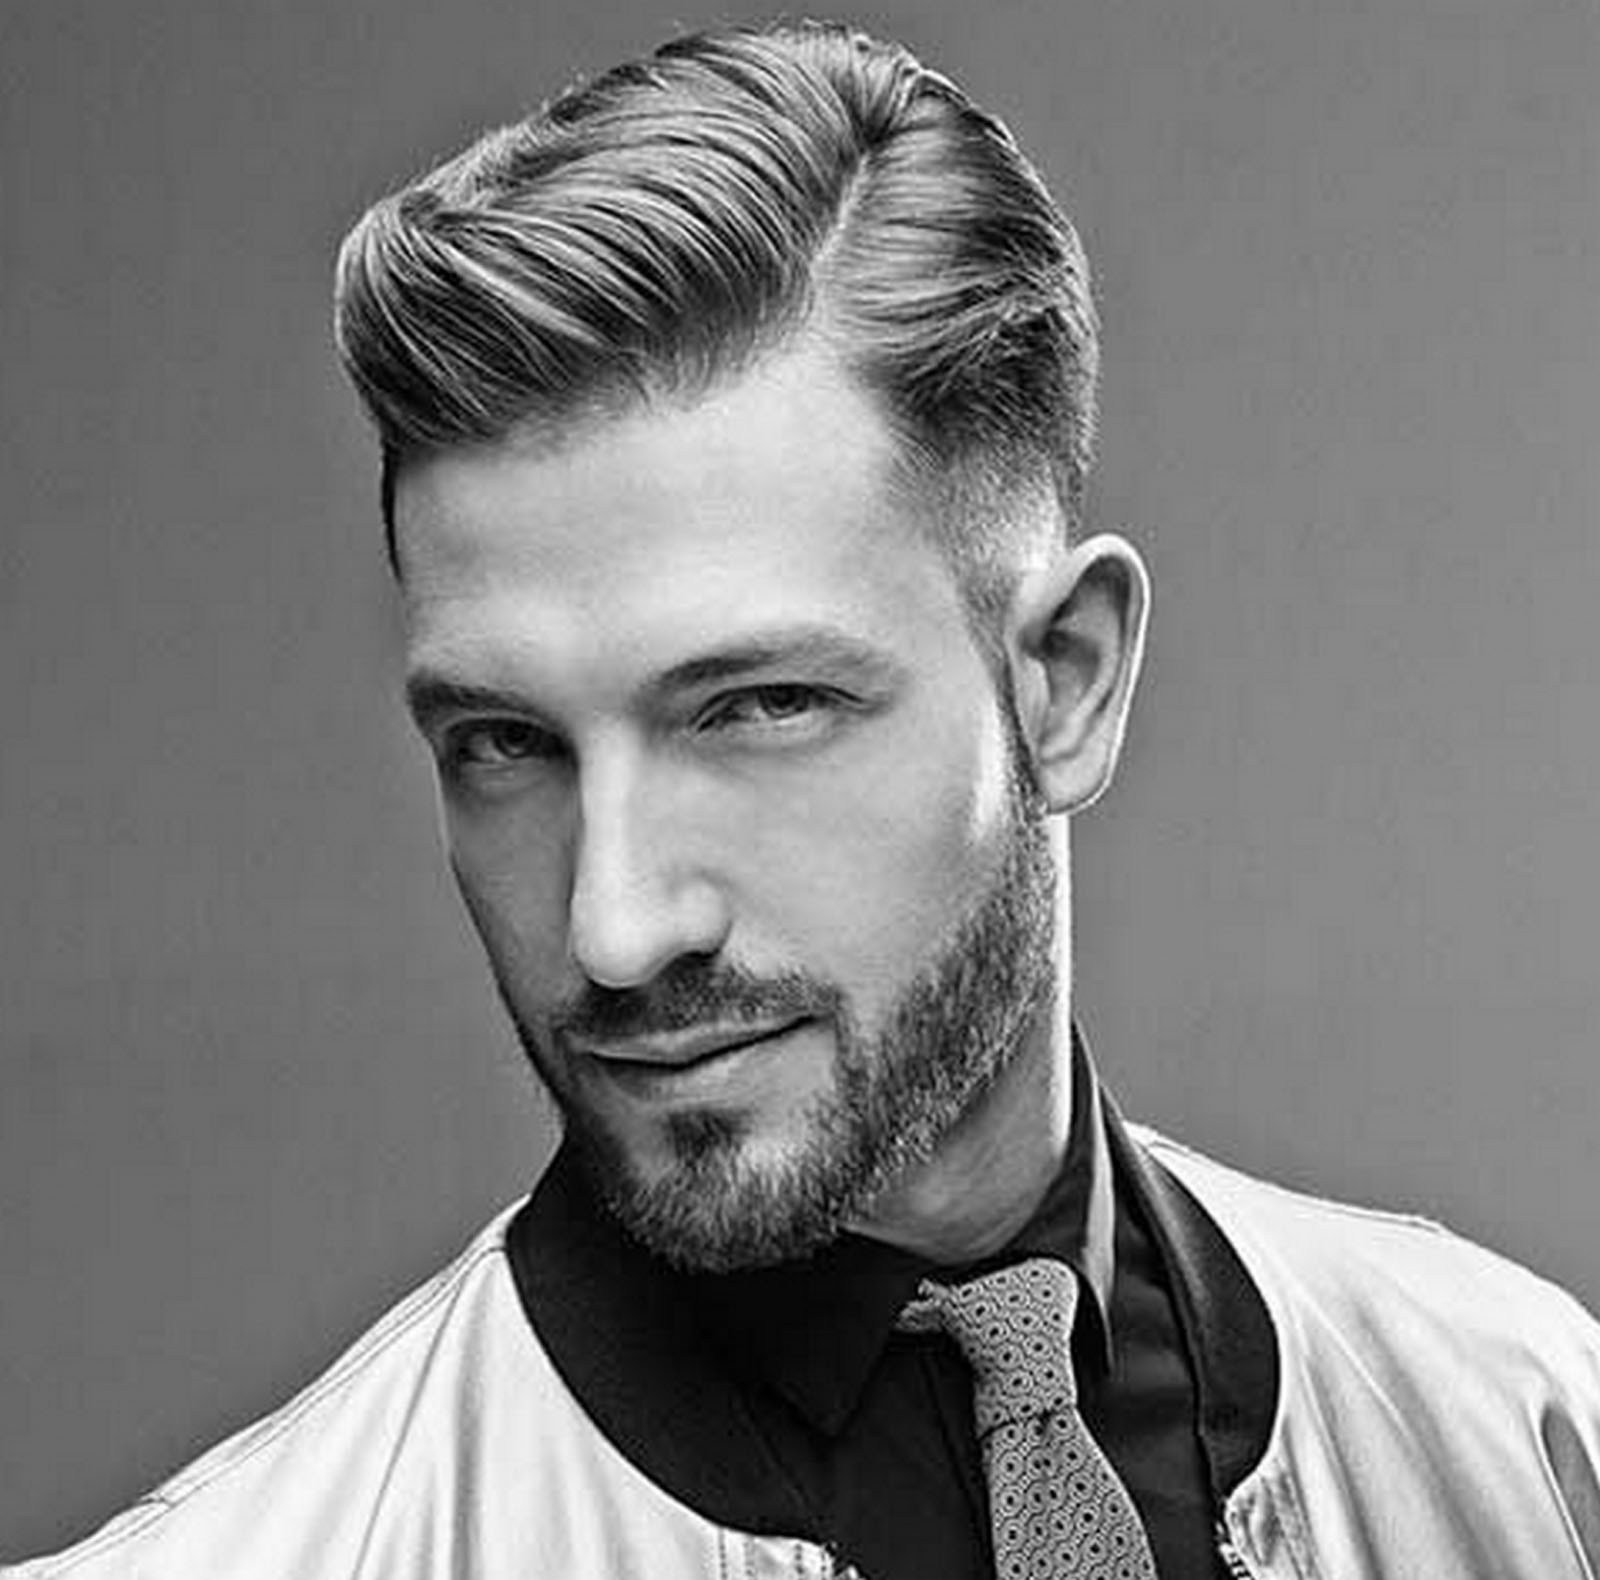 The Best 30 Best Hairstyles And Haircuts For Men In 2016 Mens Craze Pictures